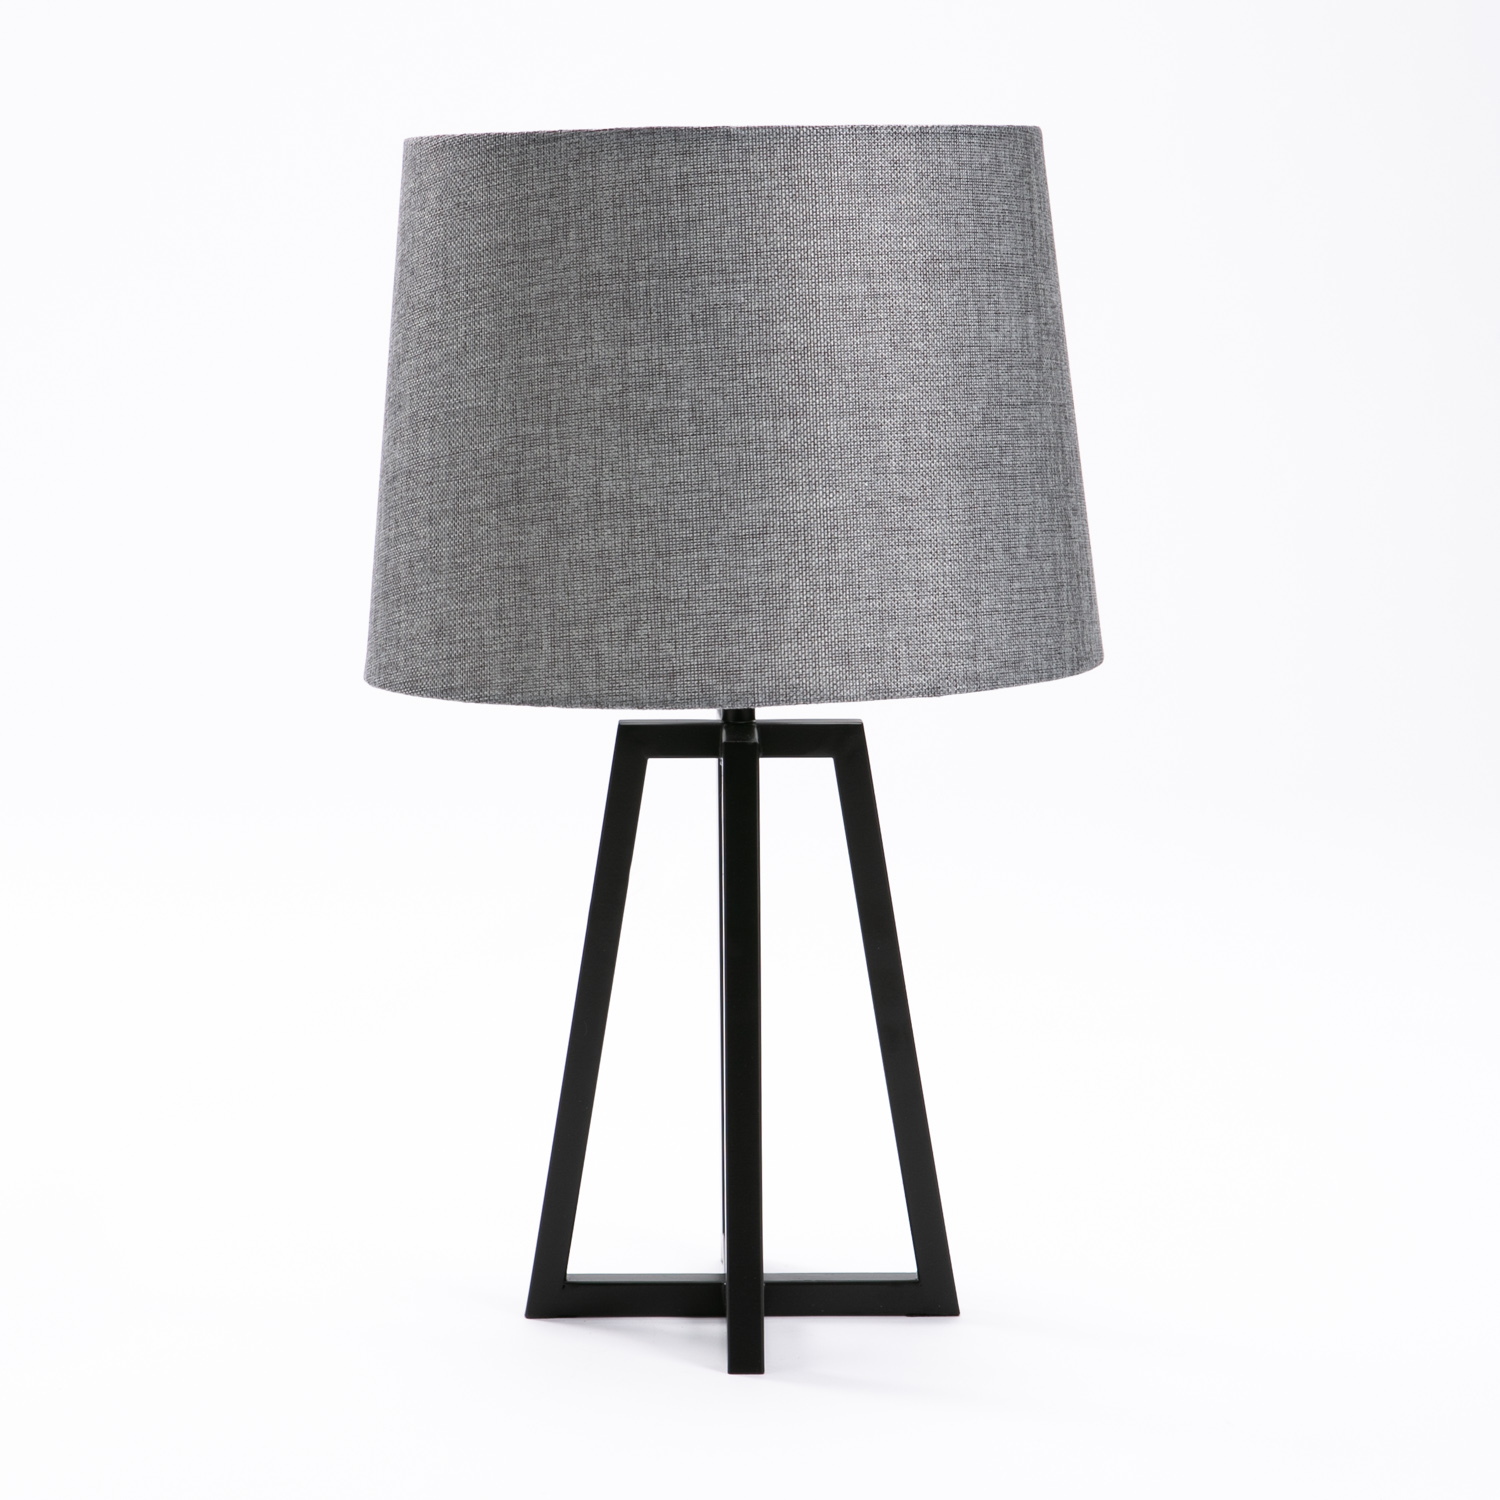 LAMP TABLE-BLACK METAL BASE-GREY FABRIC SHADE